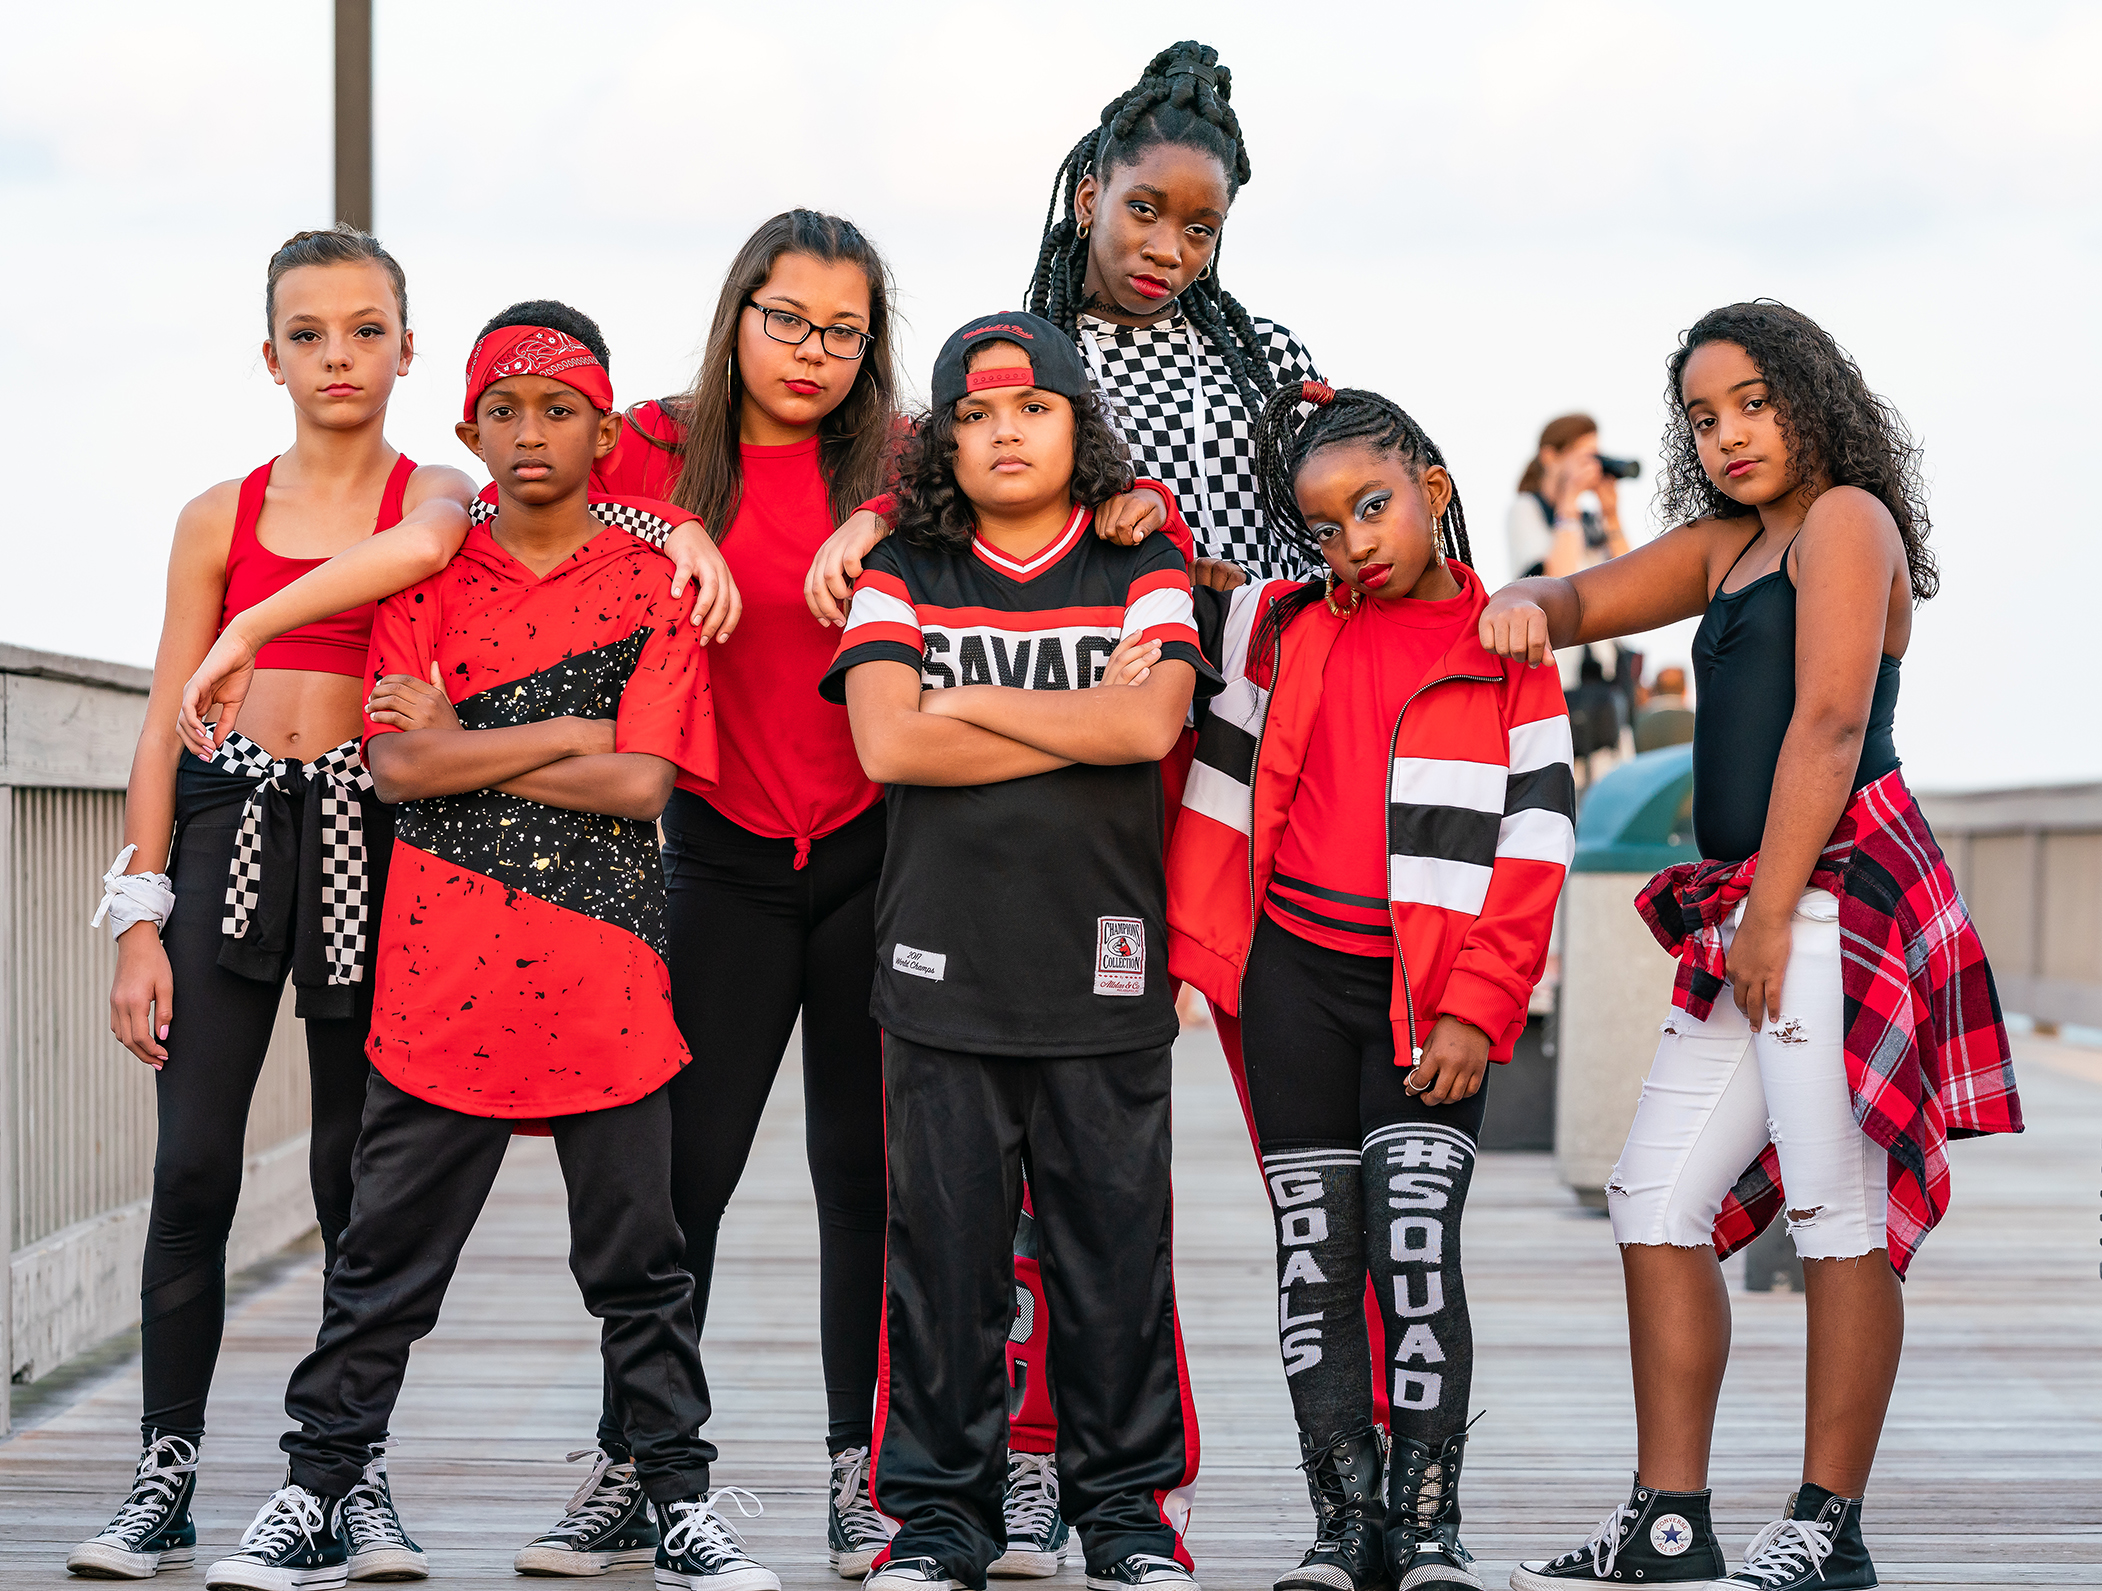 Beat Street Hip Hop Dancers